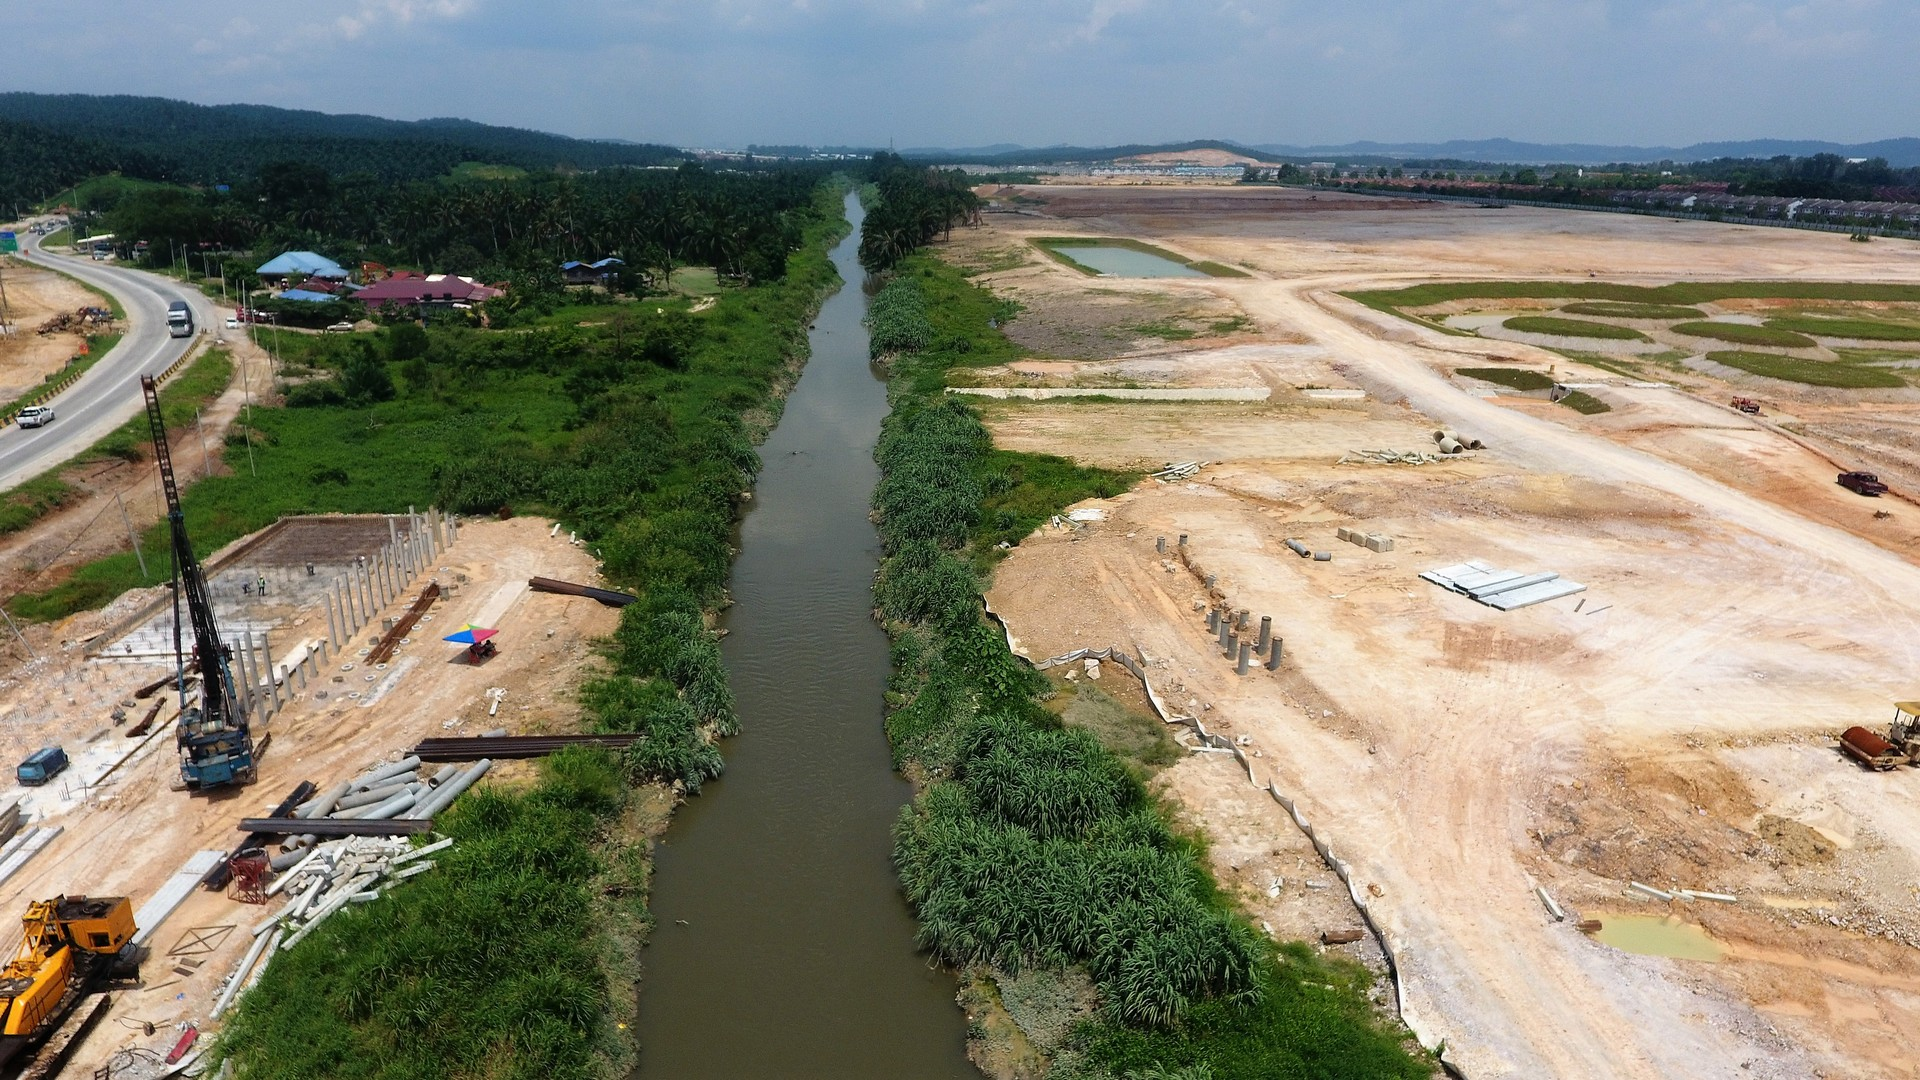 Bridge site at Sg. Buloh.